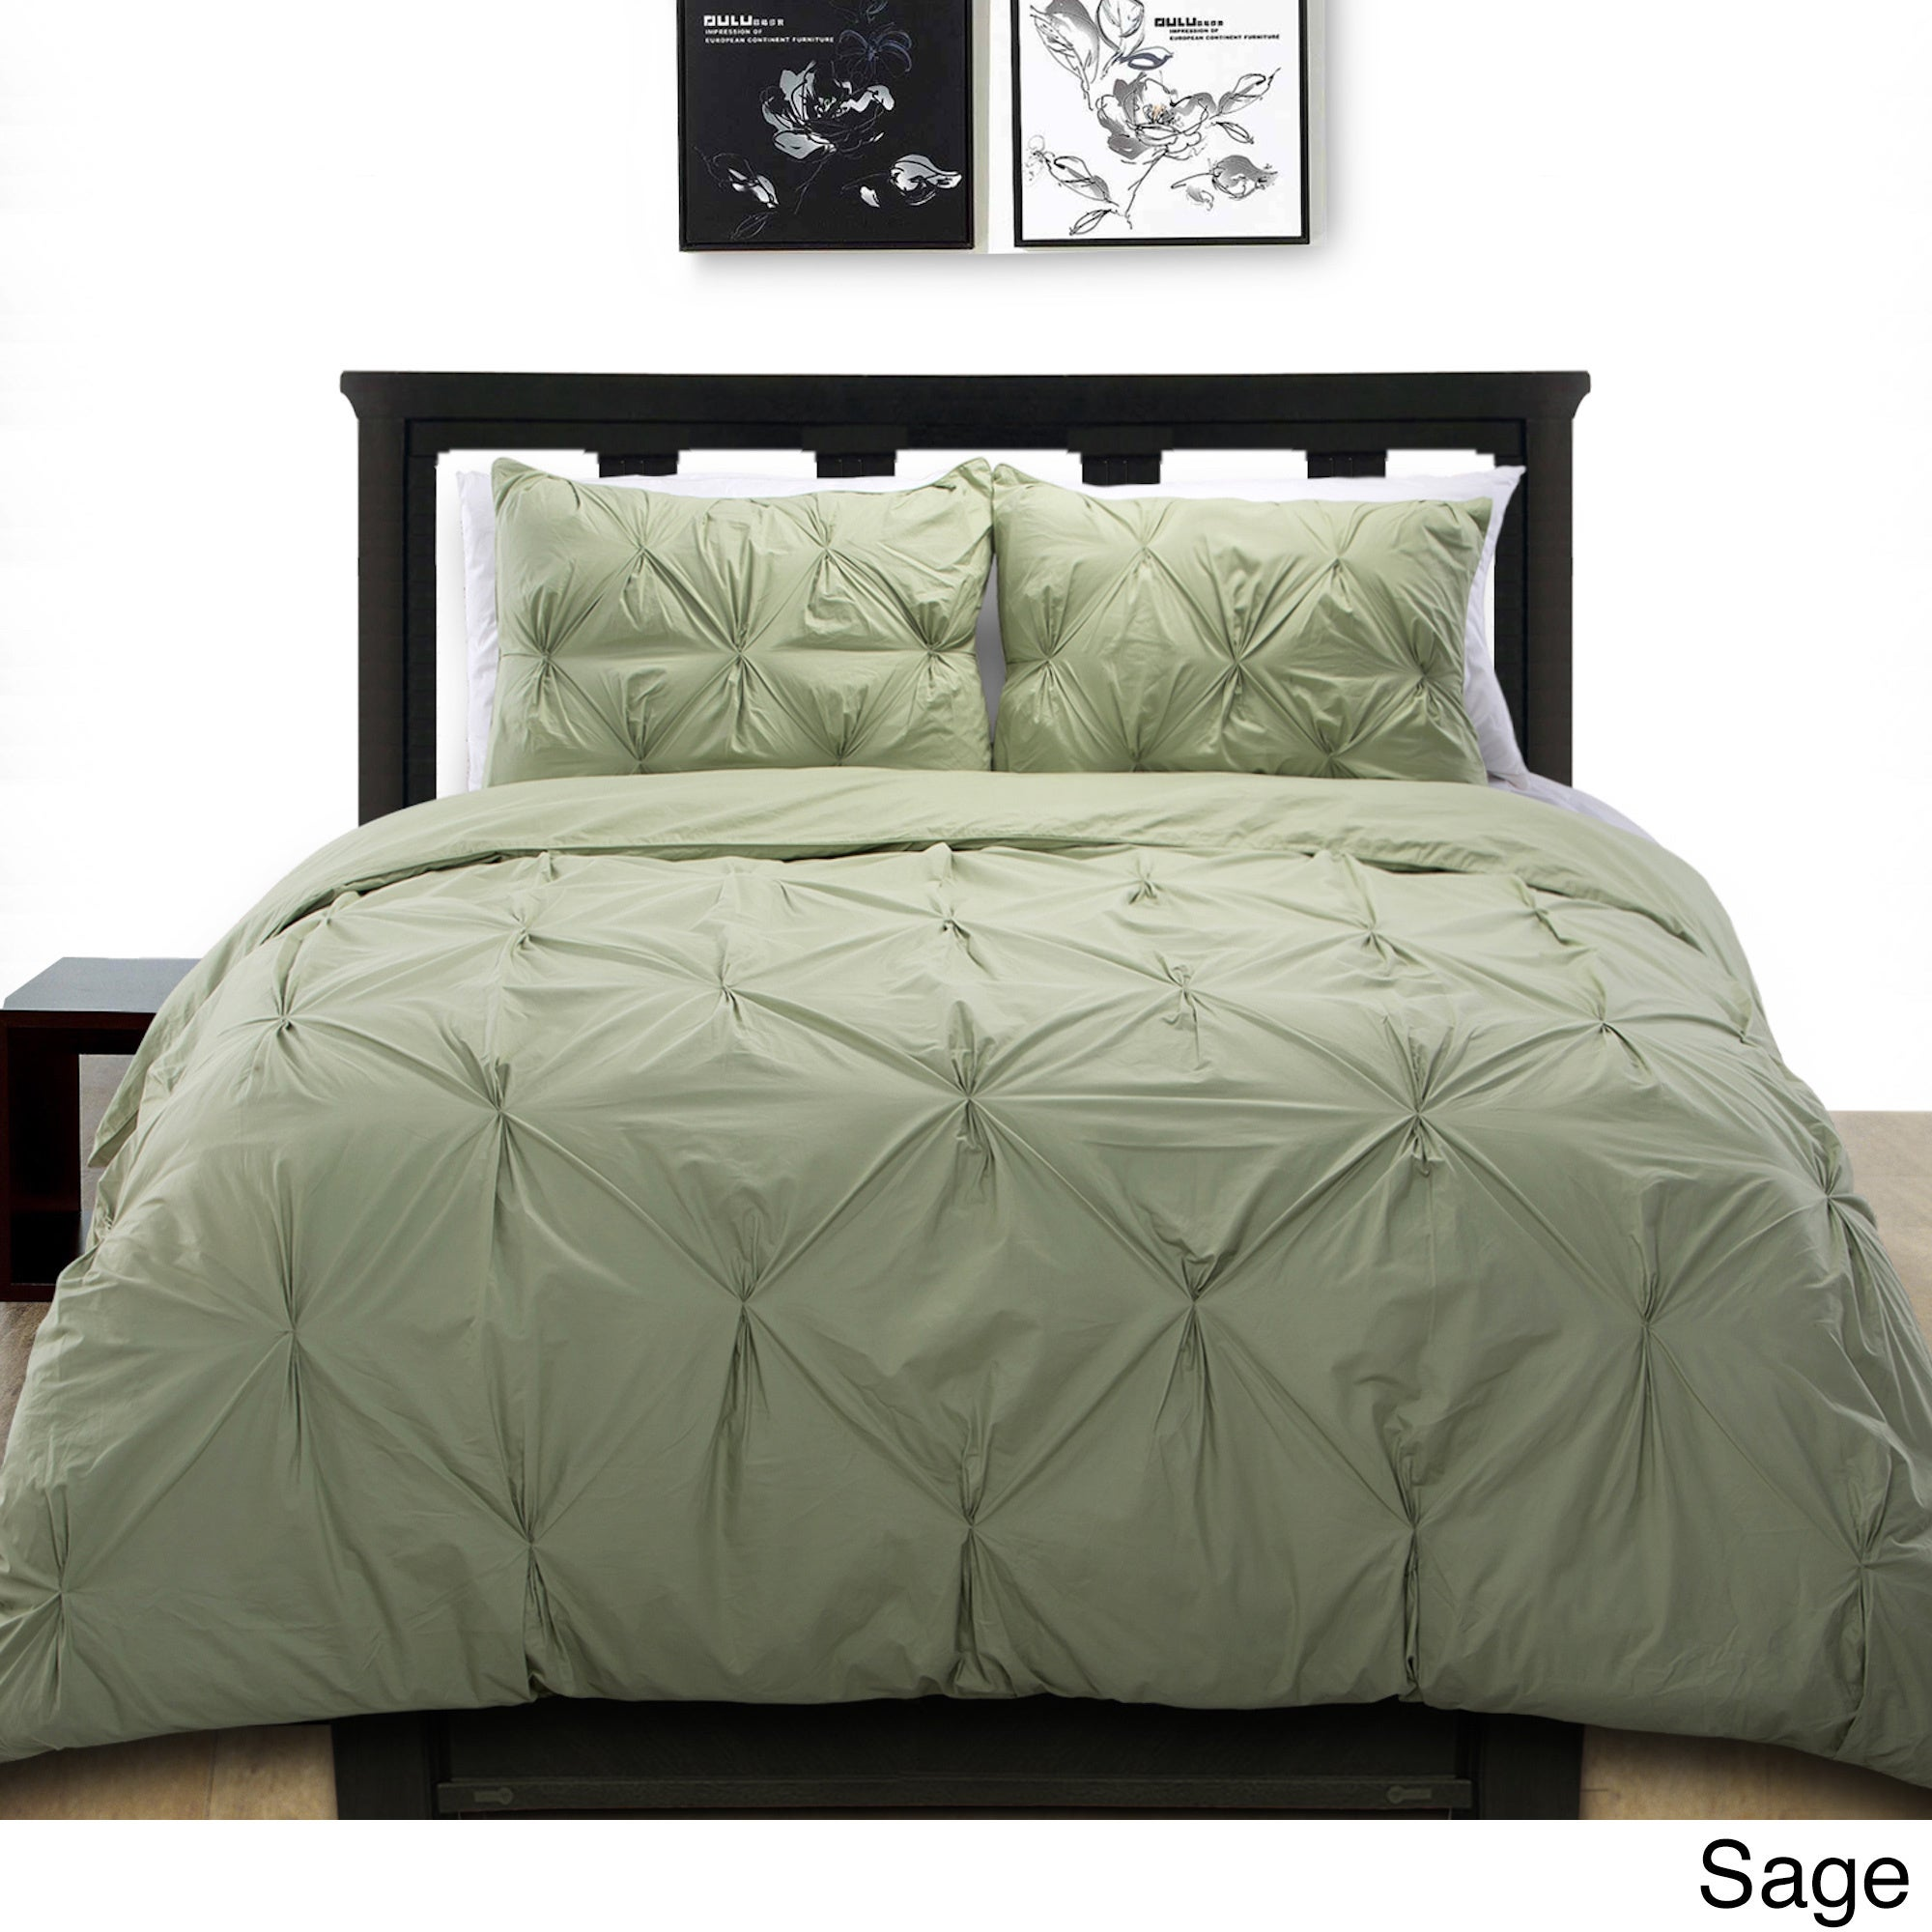 pleated california pintuck set shop product duvet by design den nmk image cover of charcoal diamond